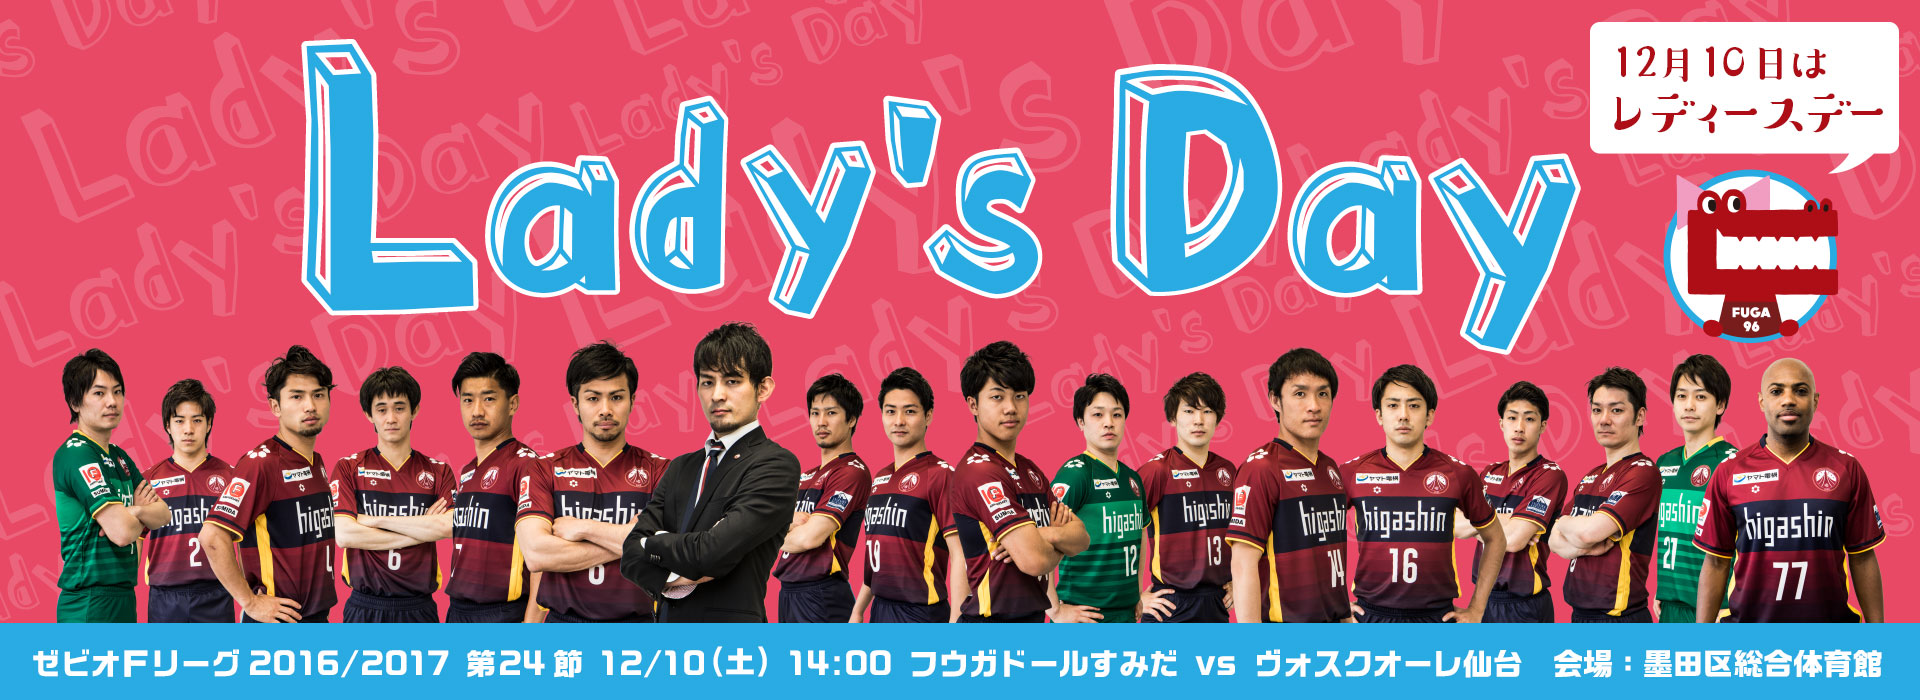 slider_ladysday_01